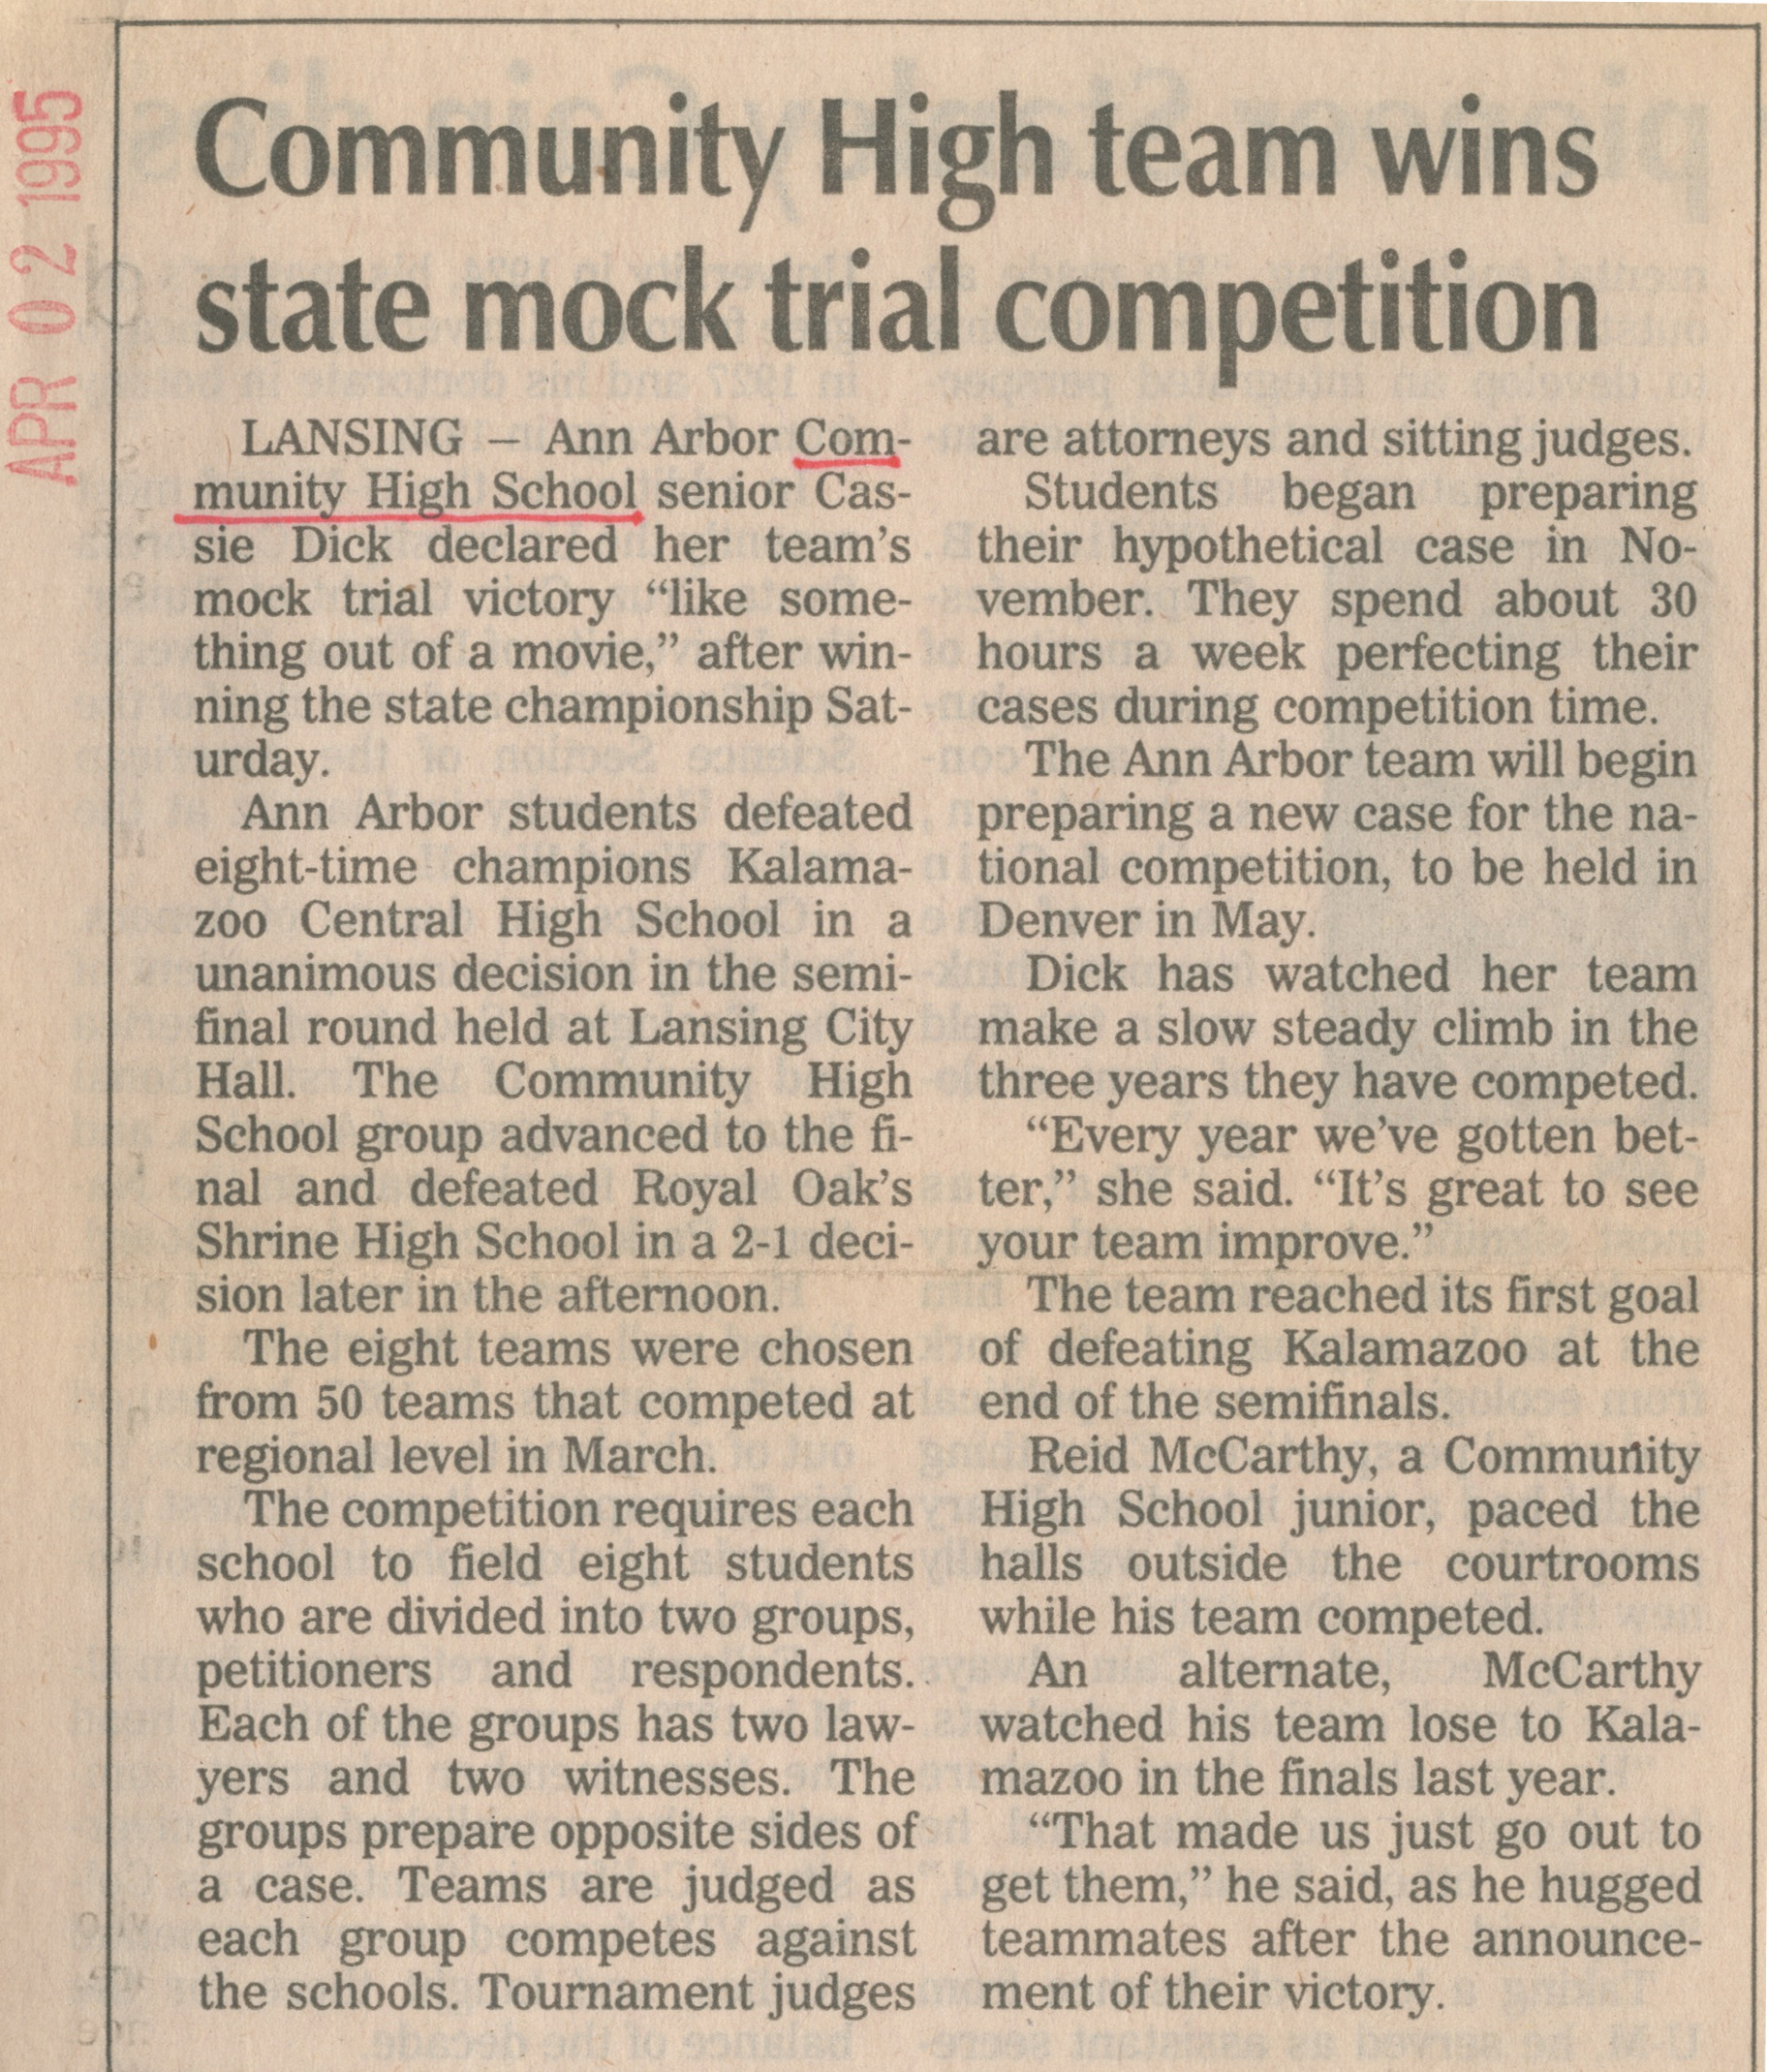 Community High Team Wins State Mock Trial Competition image